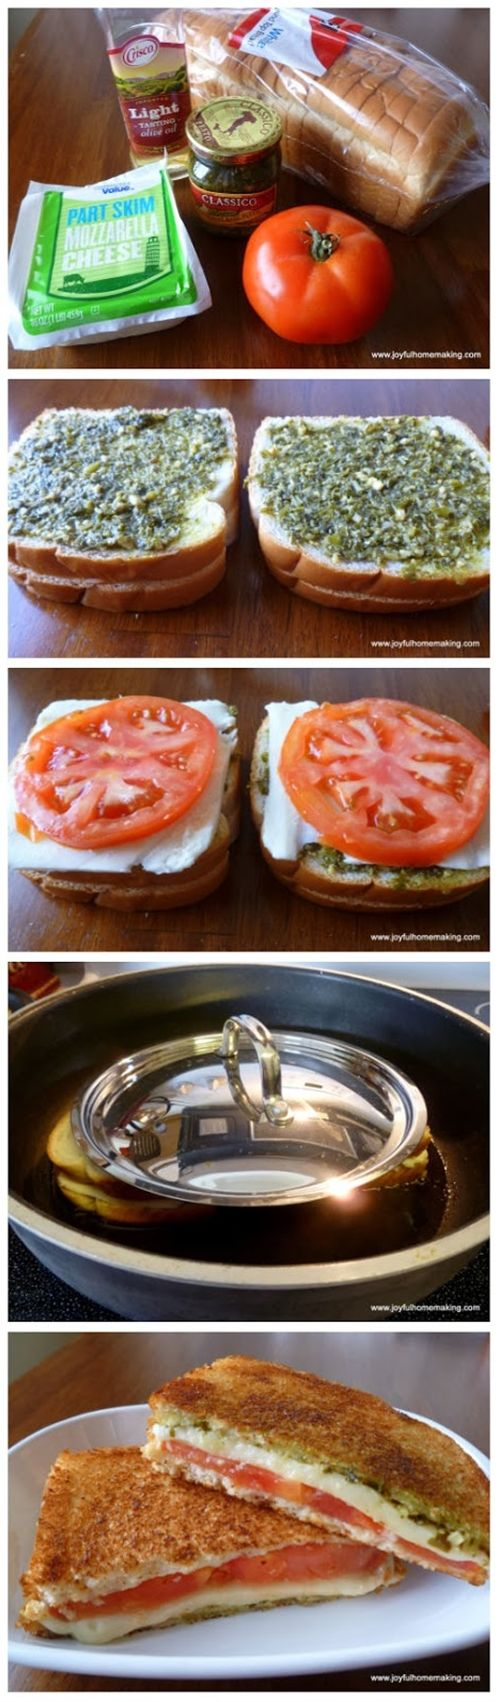 Grilled Cheese with Tomato and Pesto - light cheese and whole wheat bread and there's the healthy version! :)